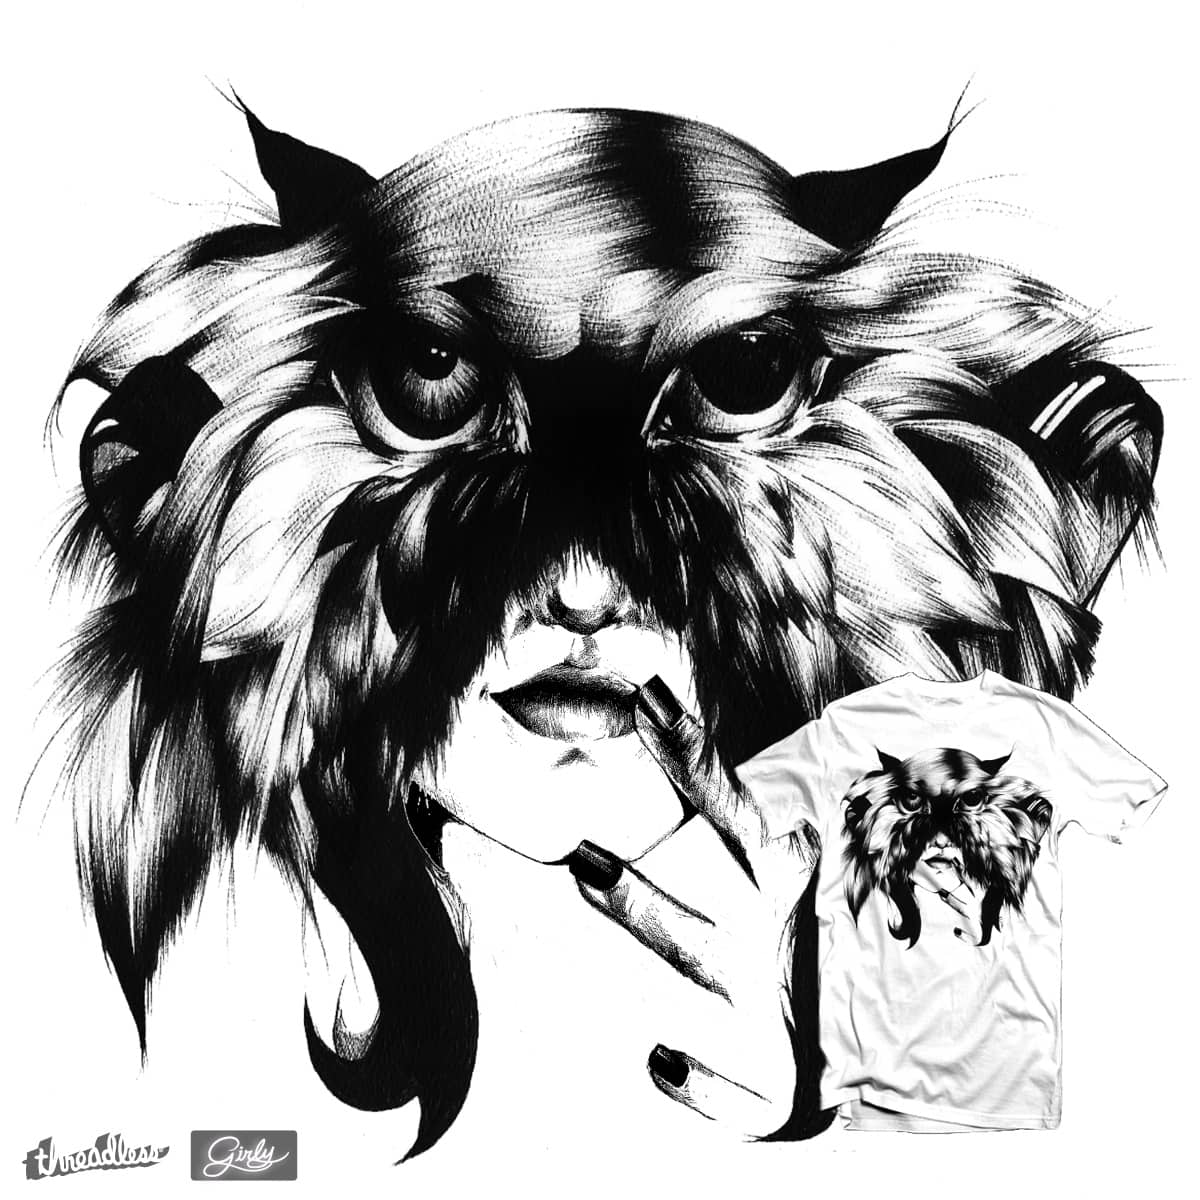 Feather or Foe? by Jaguar6Styx on Threadless